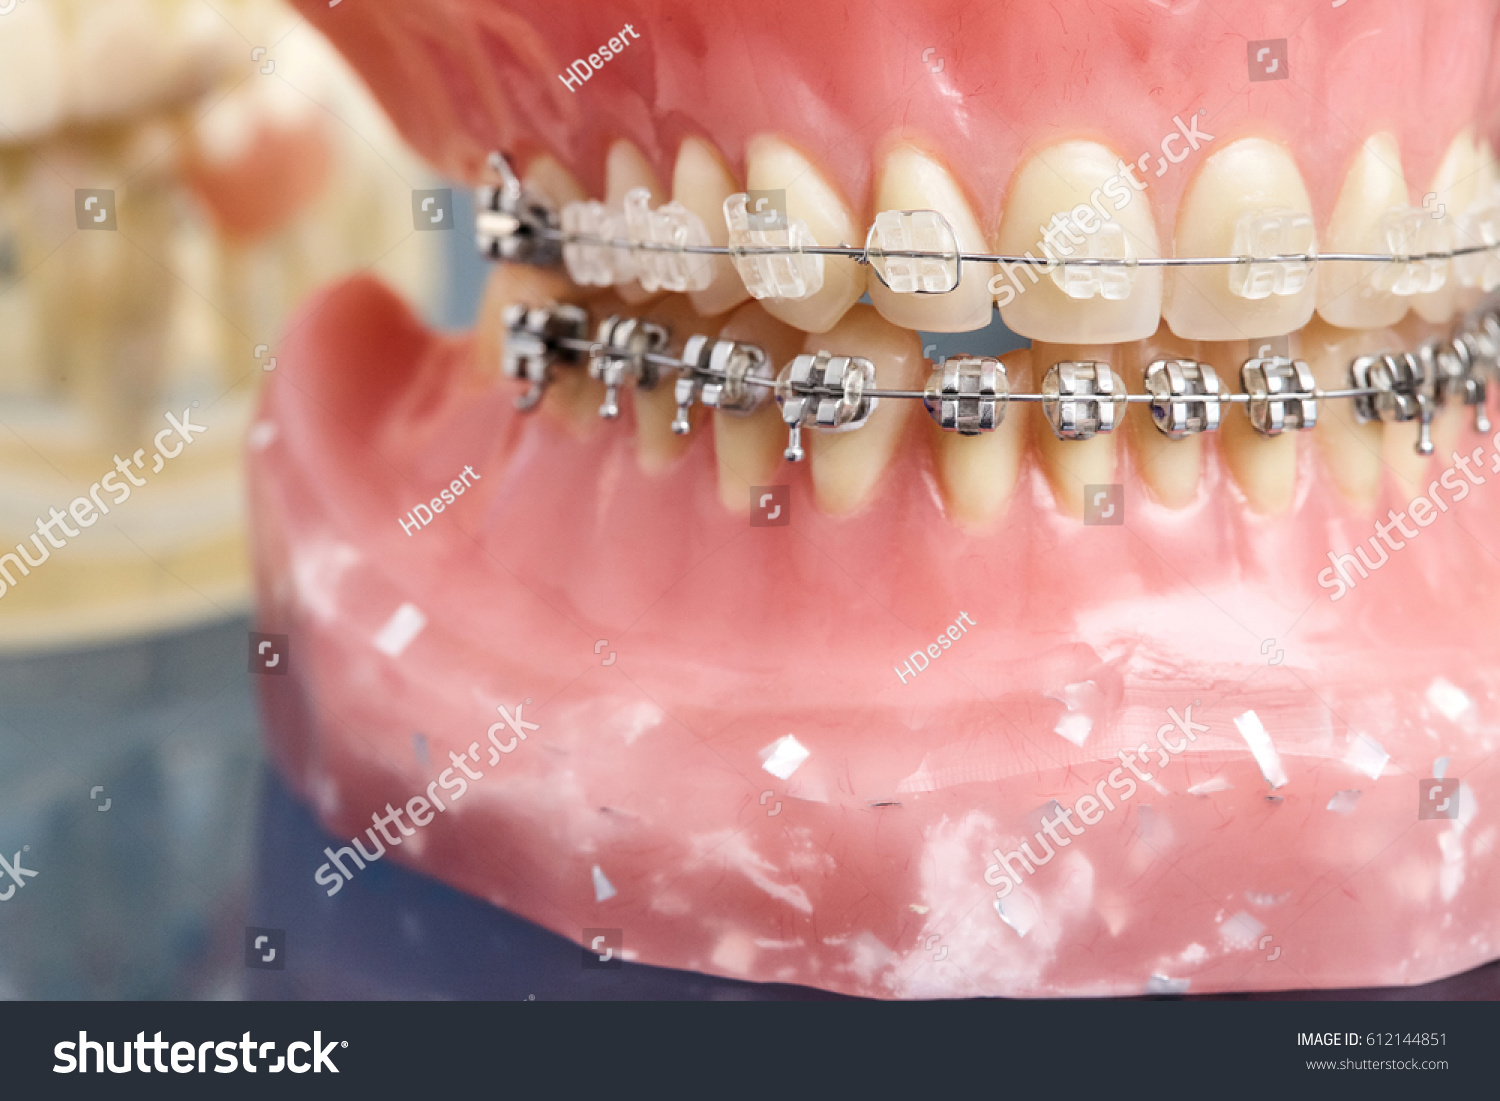 Human Jaw Teeth Model Metal Wired Stock Photo (Edit Now) 612144851 ...